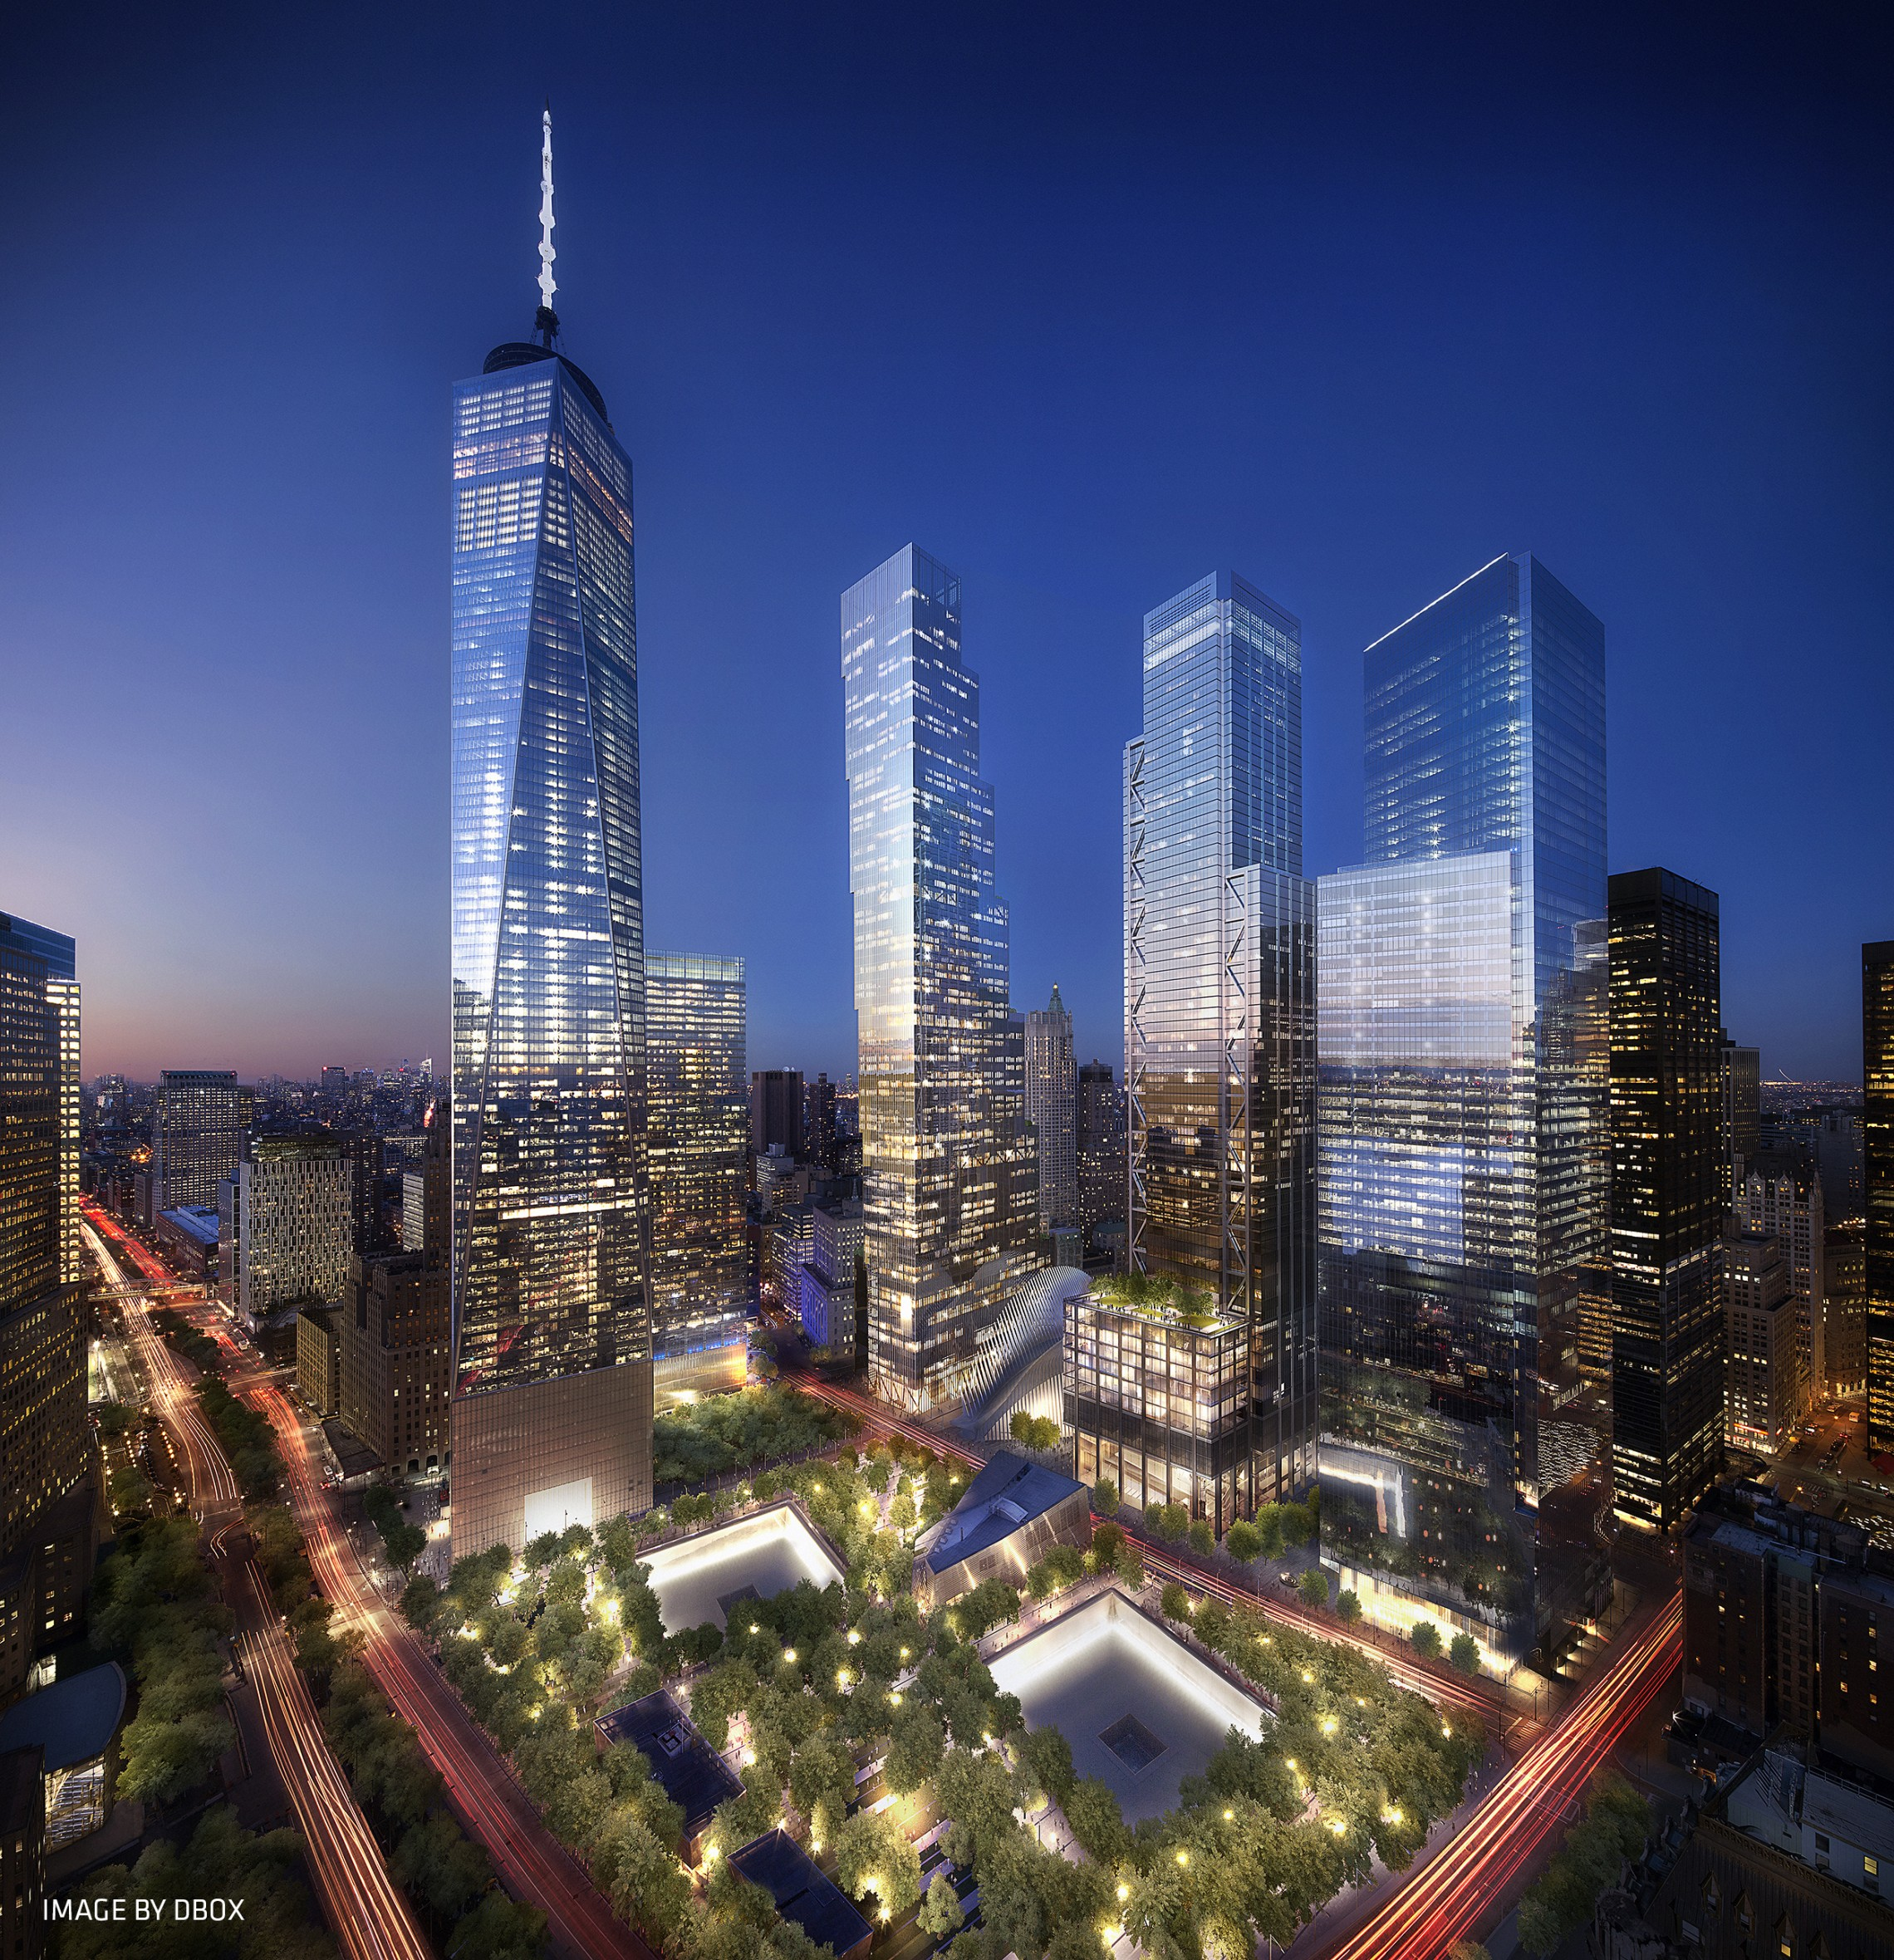 World trade center master plan libeskind for 2 world trade center